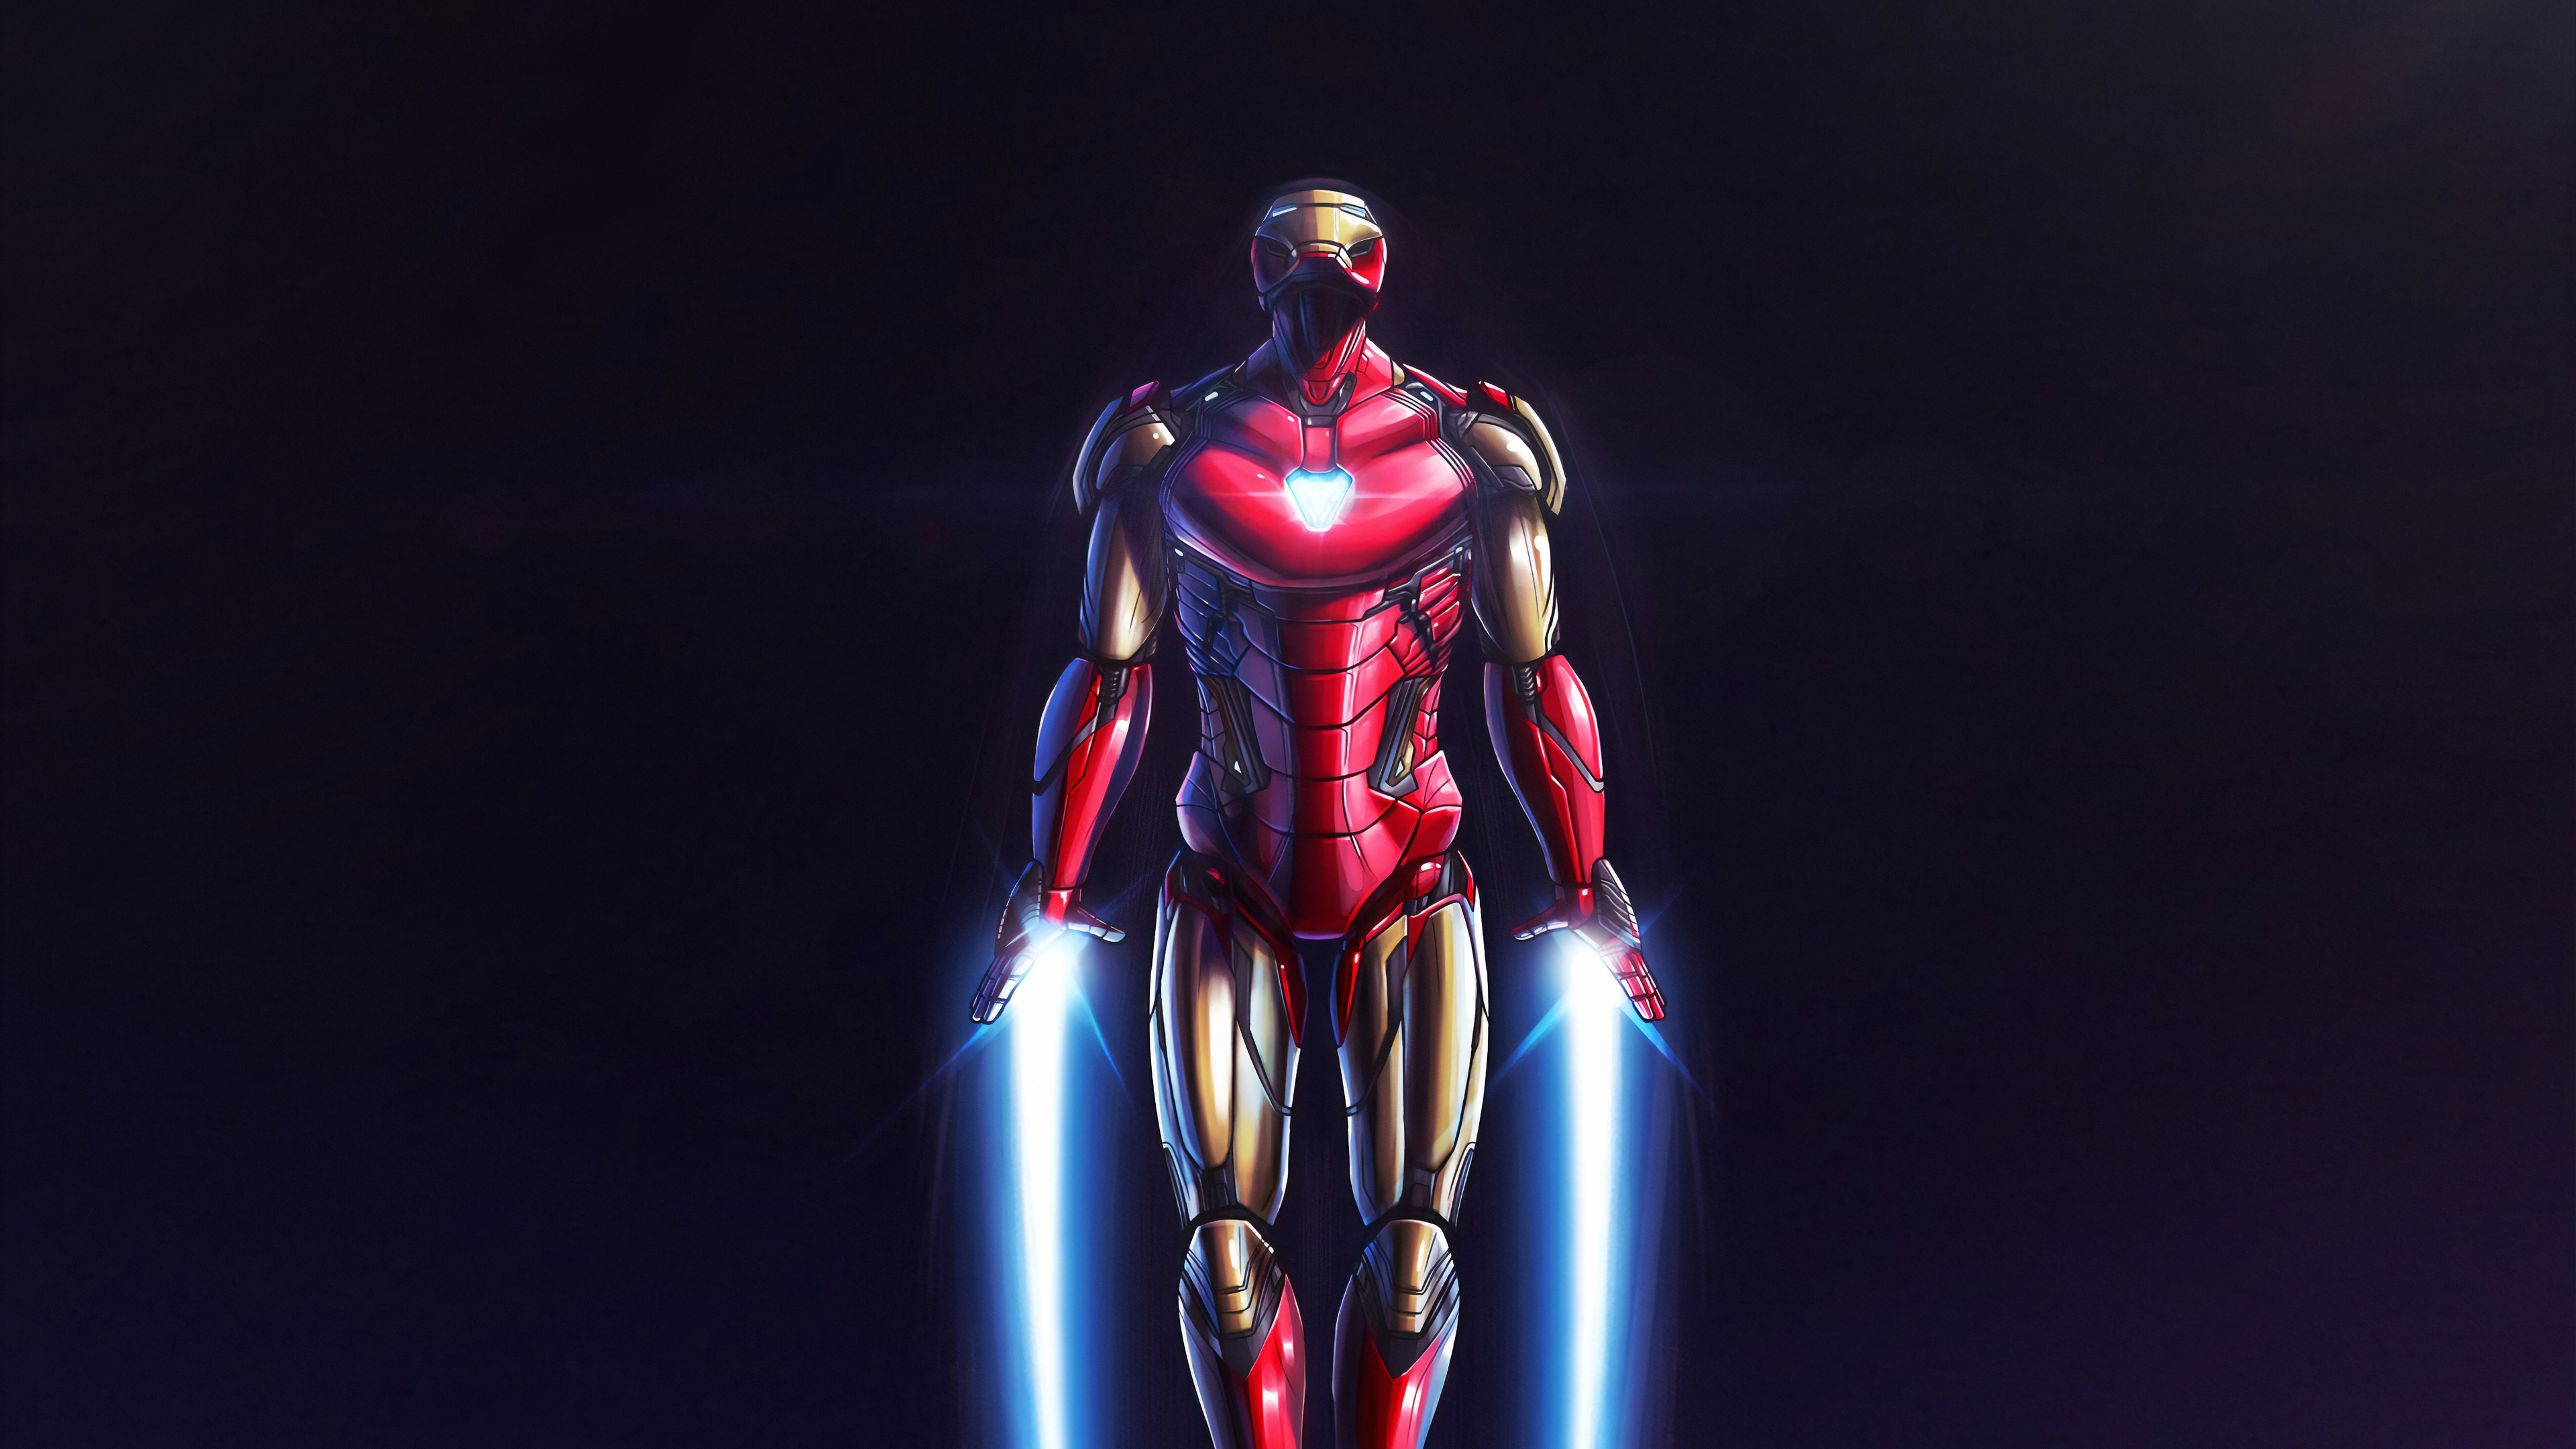 iron man new flying 1572368865 - Iron Man New Flying - superheroes wallpapers, iron man wallpapers, hd-wallpapers, digital art wallpapers, artwork wallpapers, artstation wallpapers, 4k-wallpapers